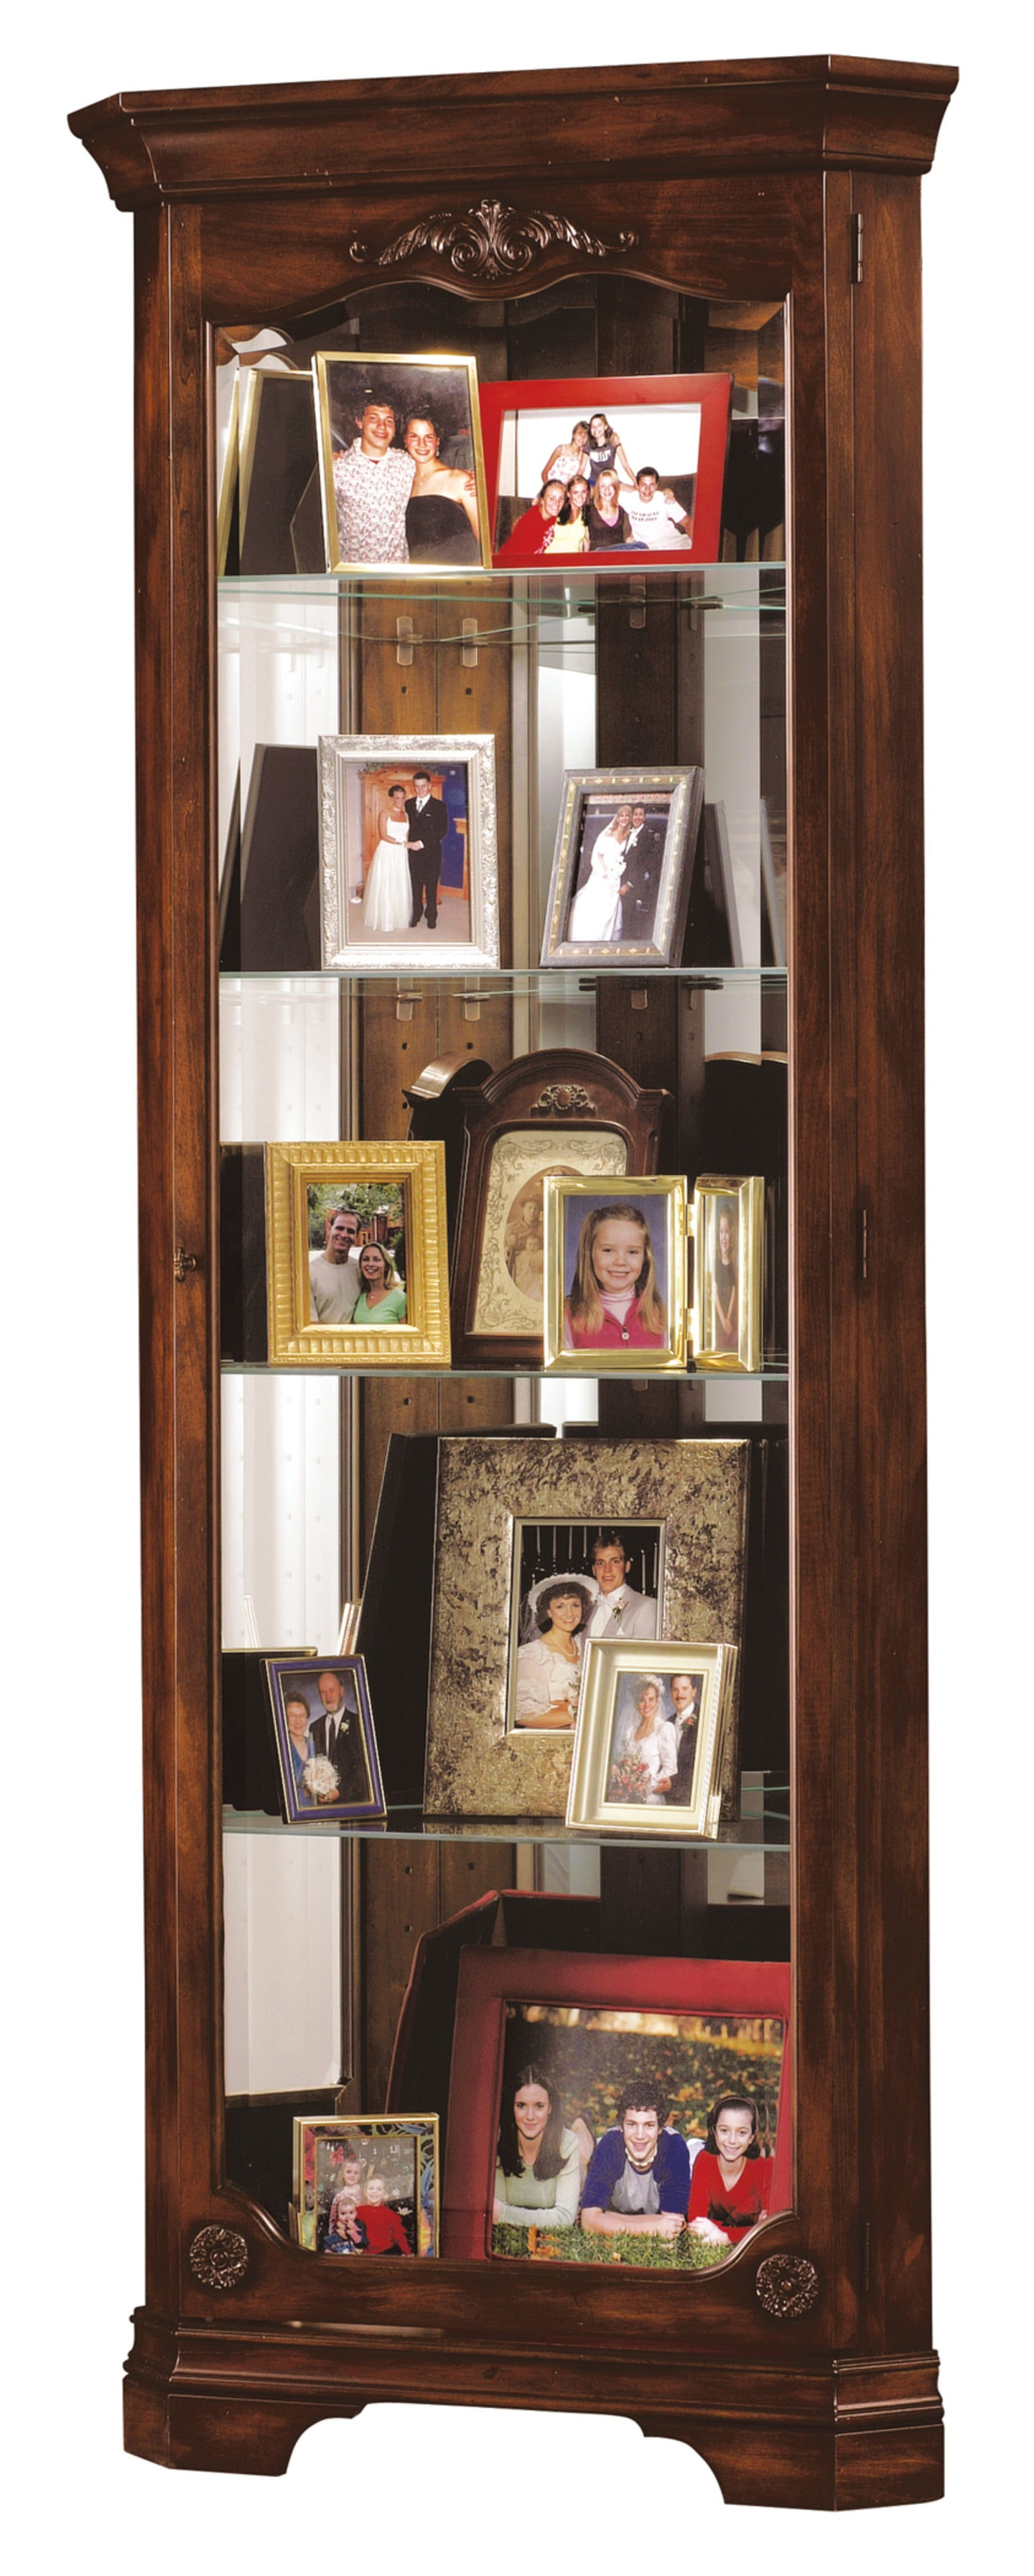 Howard Miller Constance Corner Curio Cabinet 680404 - Curios And More